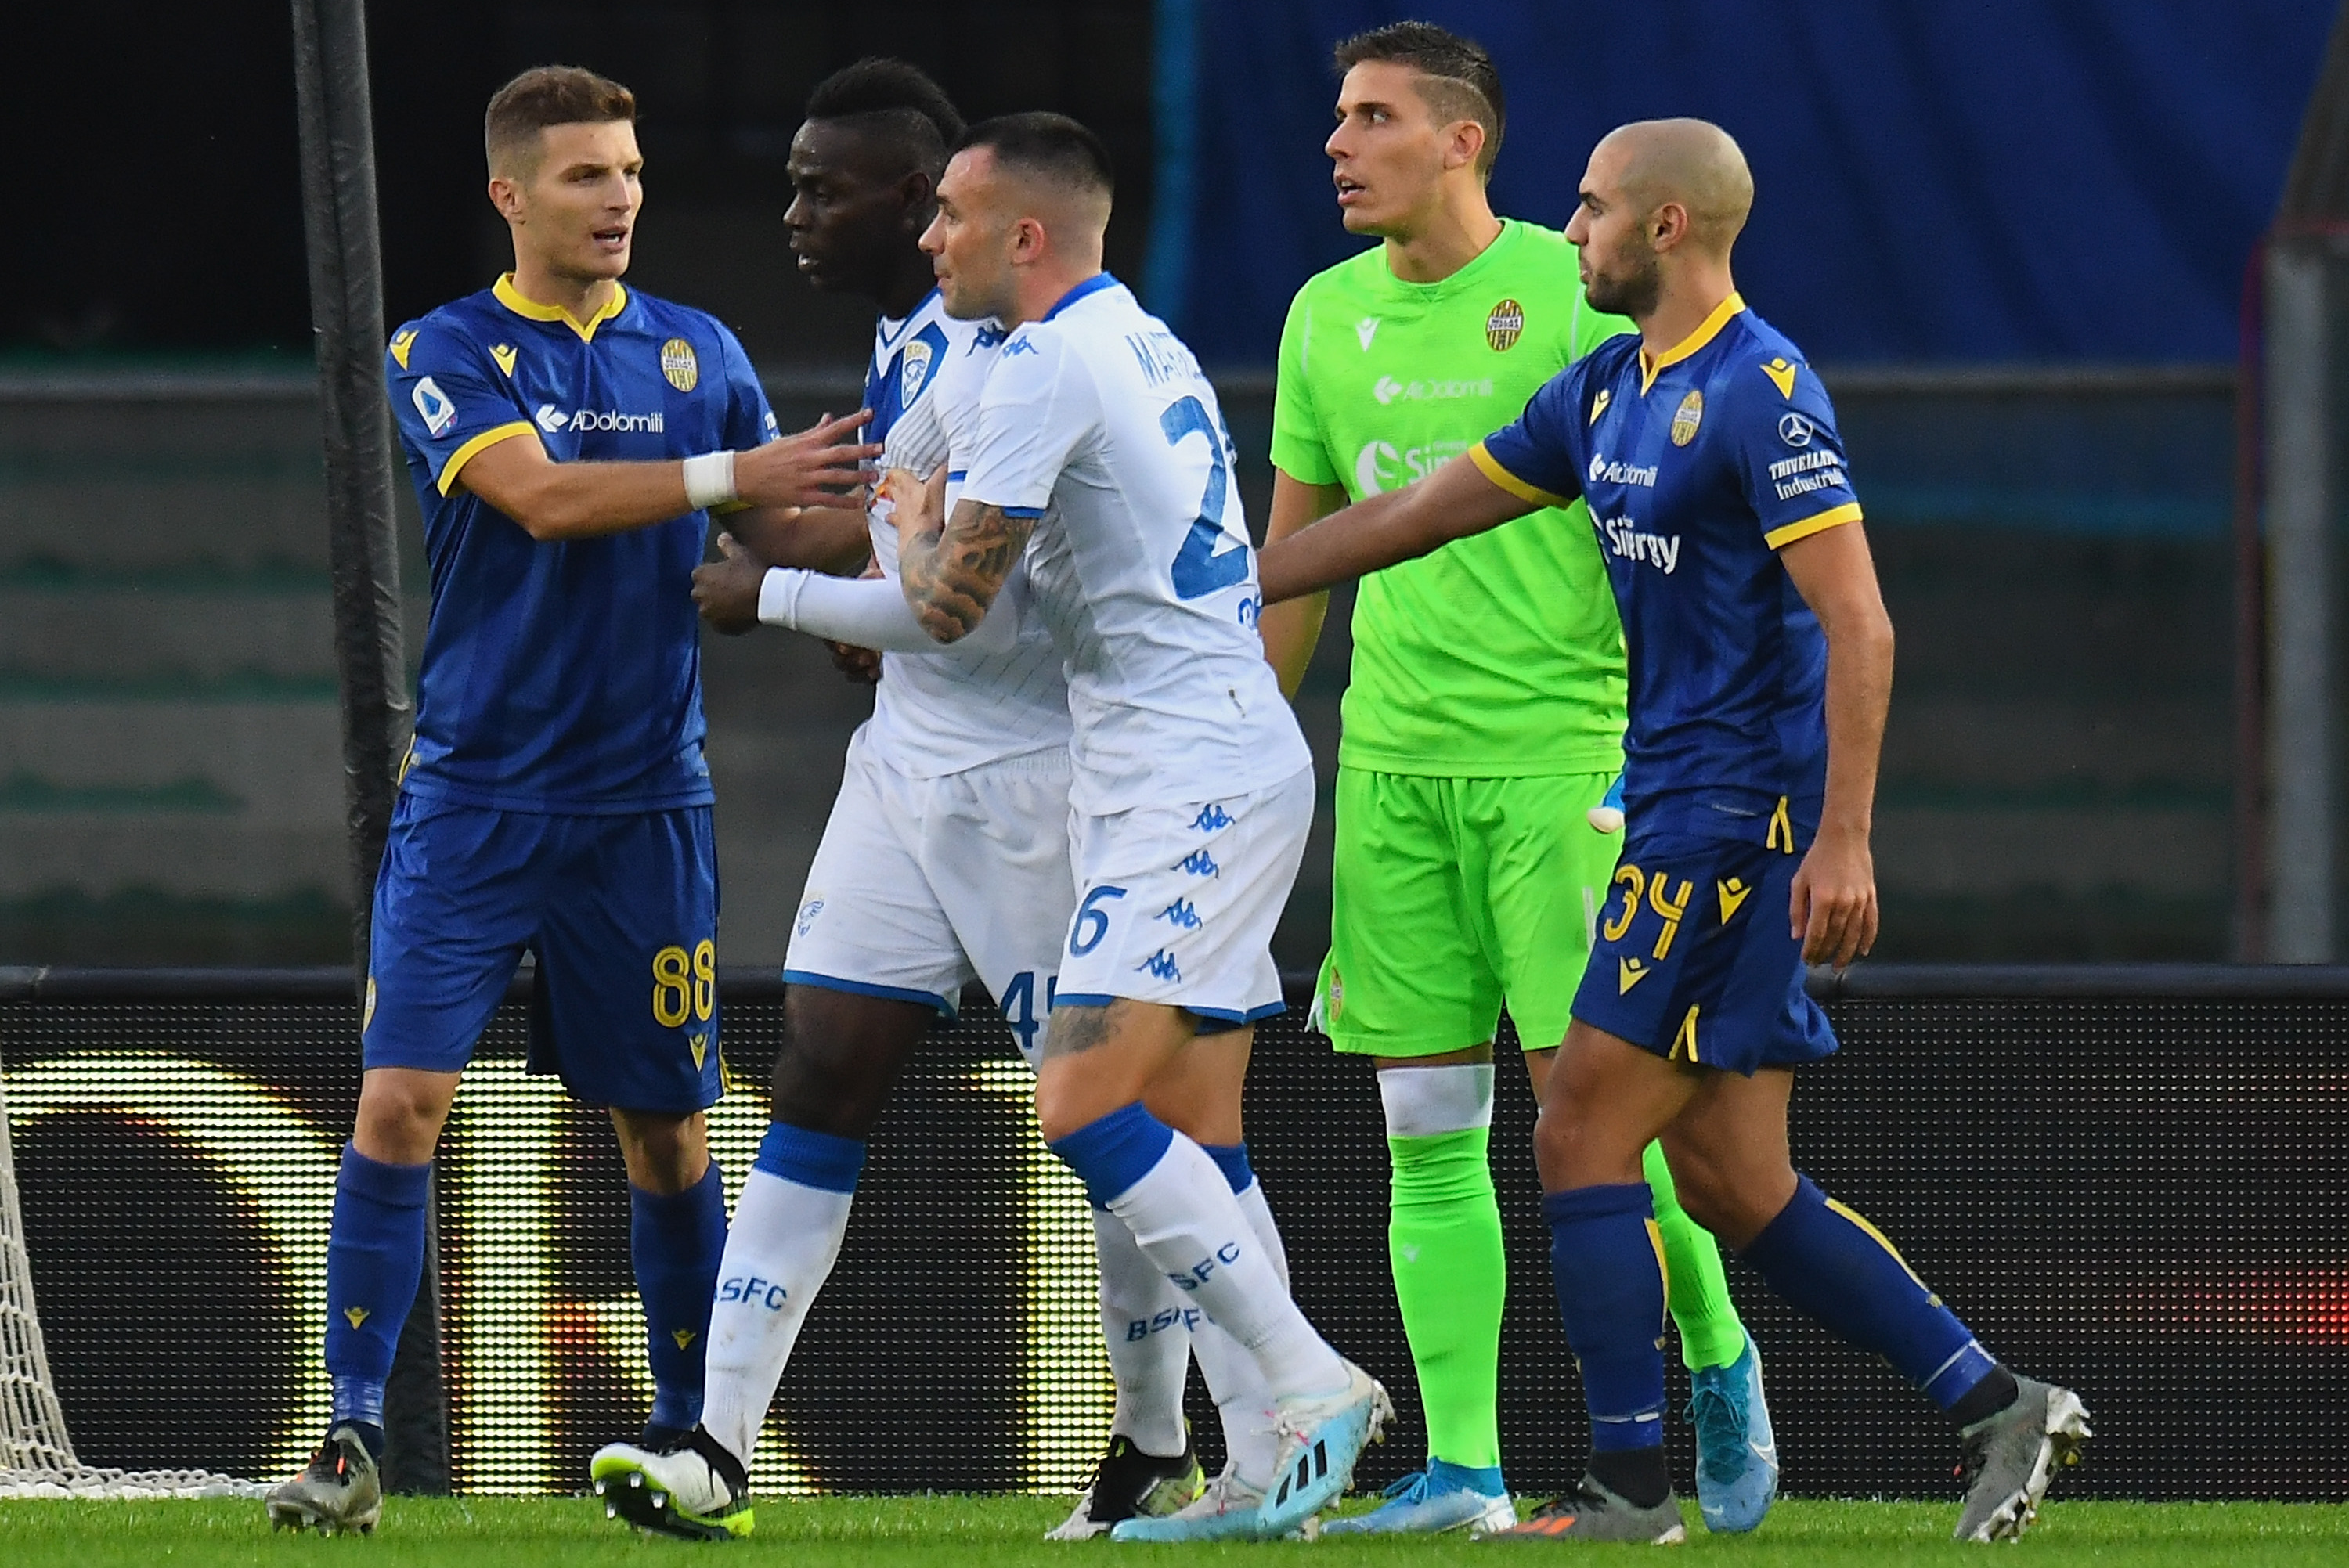 Brescia S Mario Balotelli Subjected To Racist Abuse Persuaded To Stay In Match Bleacher Report Latest News Videos And Highlights